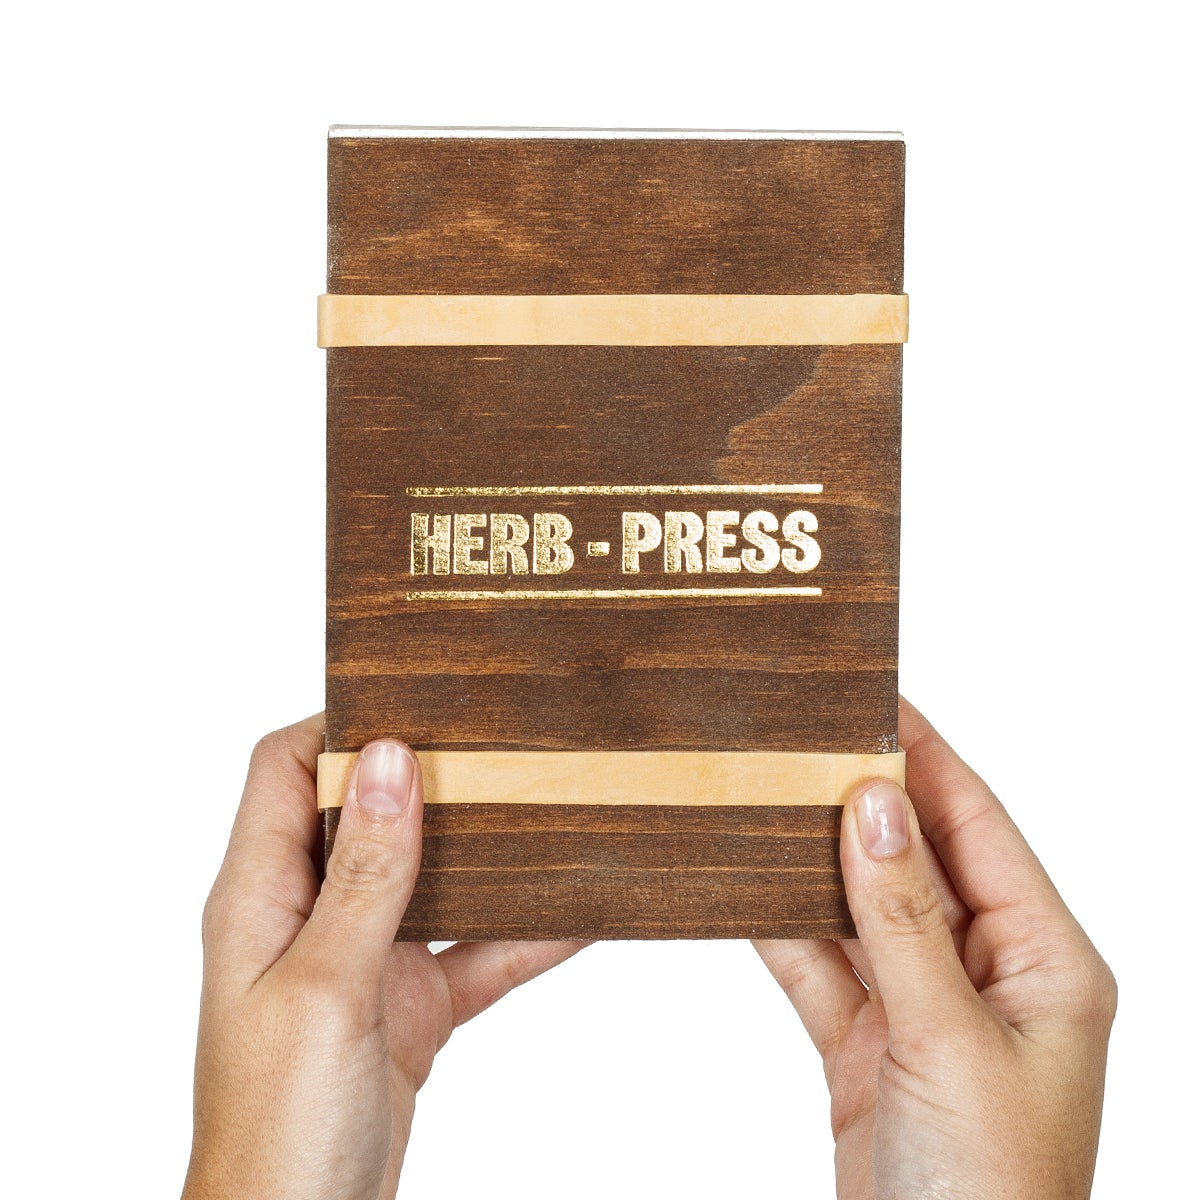 Image of Herb-press - small aged